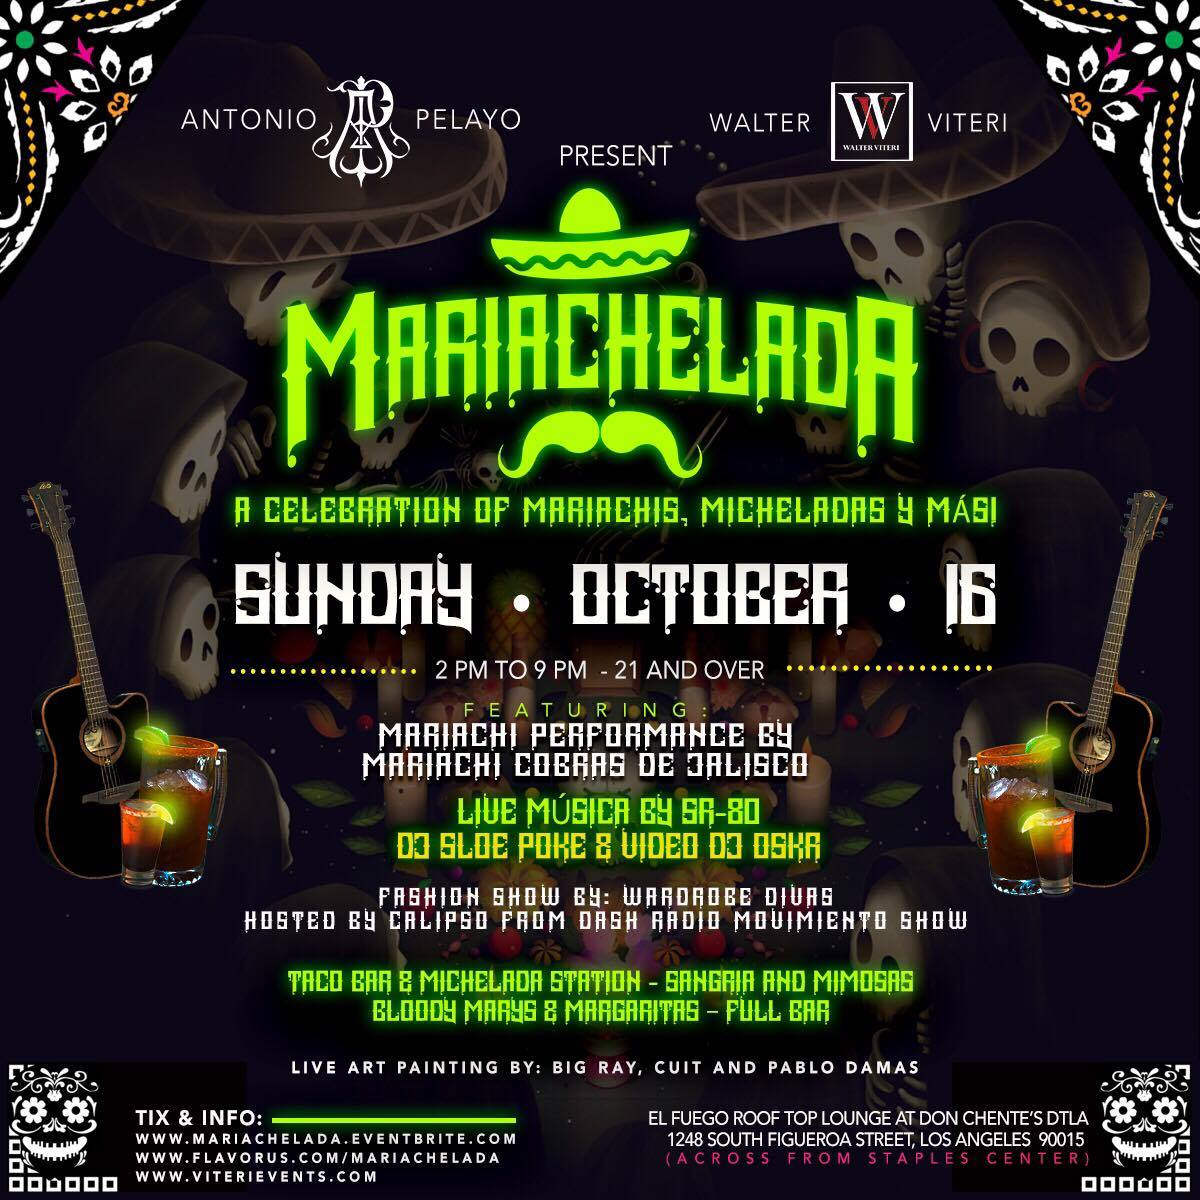 main-flyer-mariachelada-101616